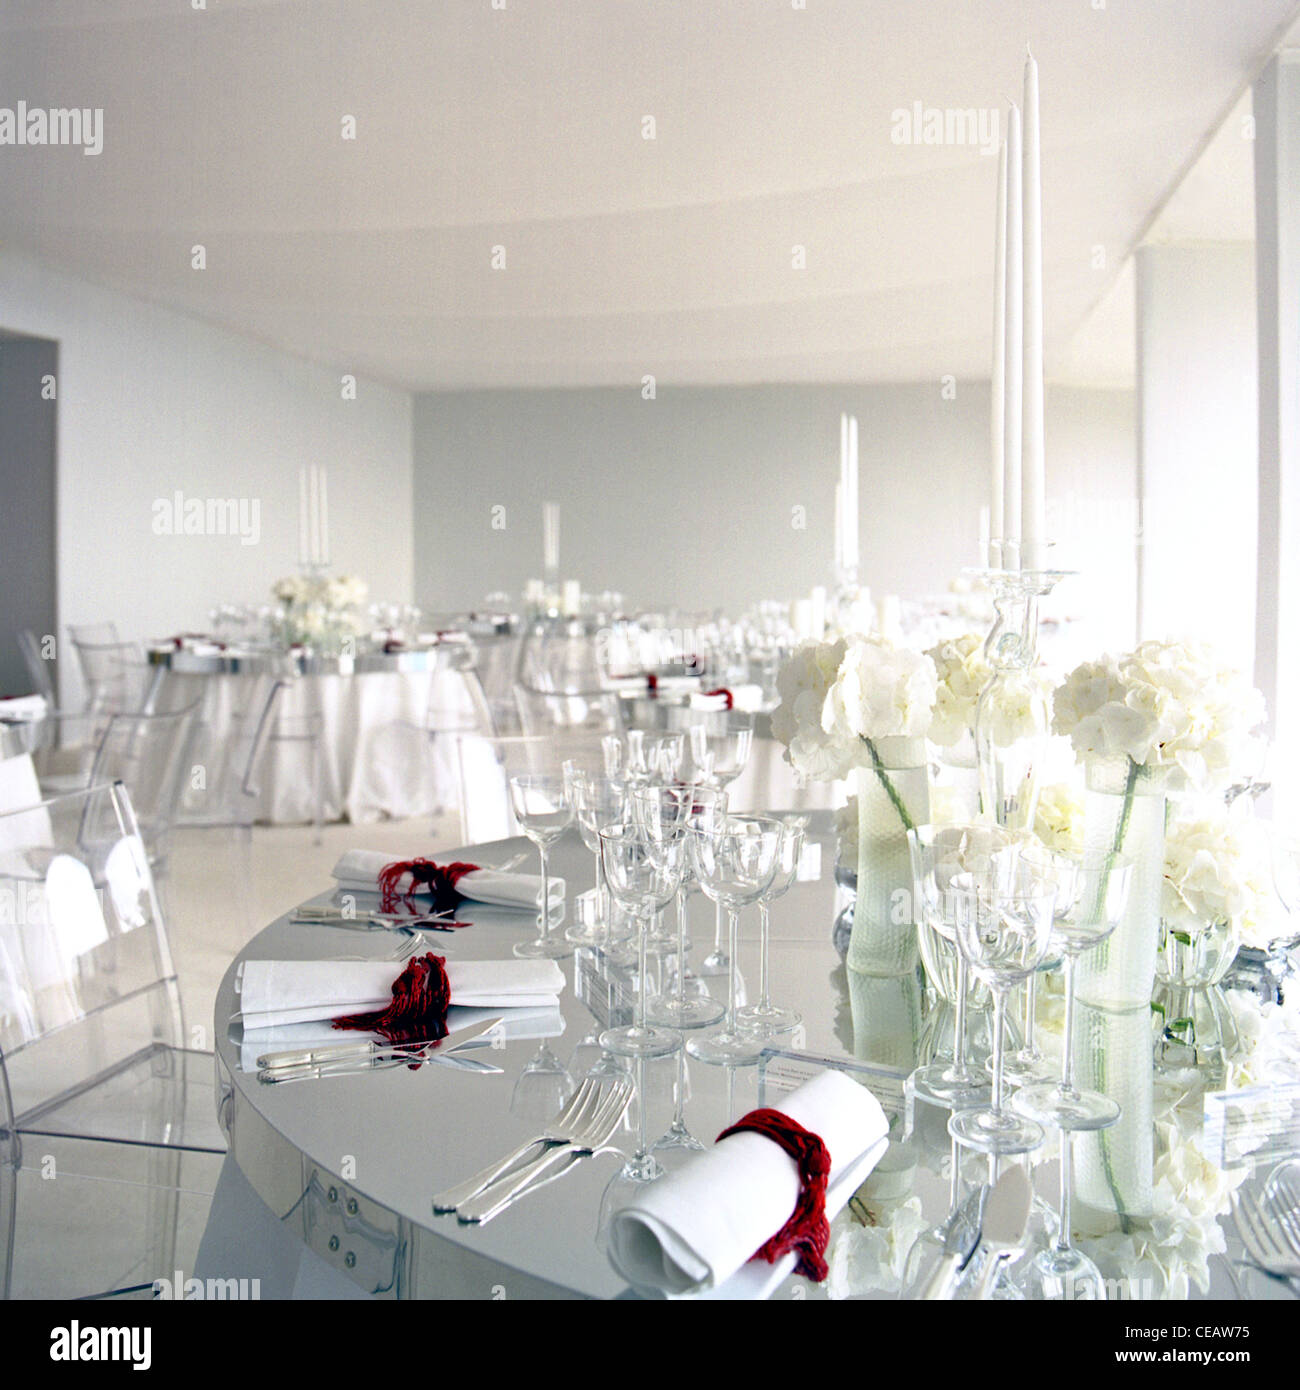 Elegant Wedding Table Setting At A High Class Hotel Stock Photo